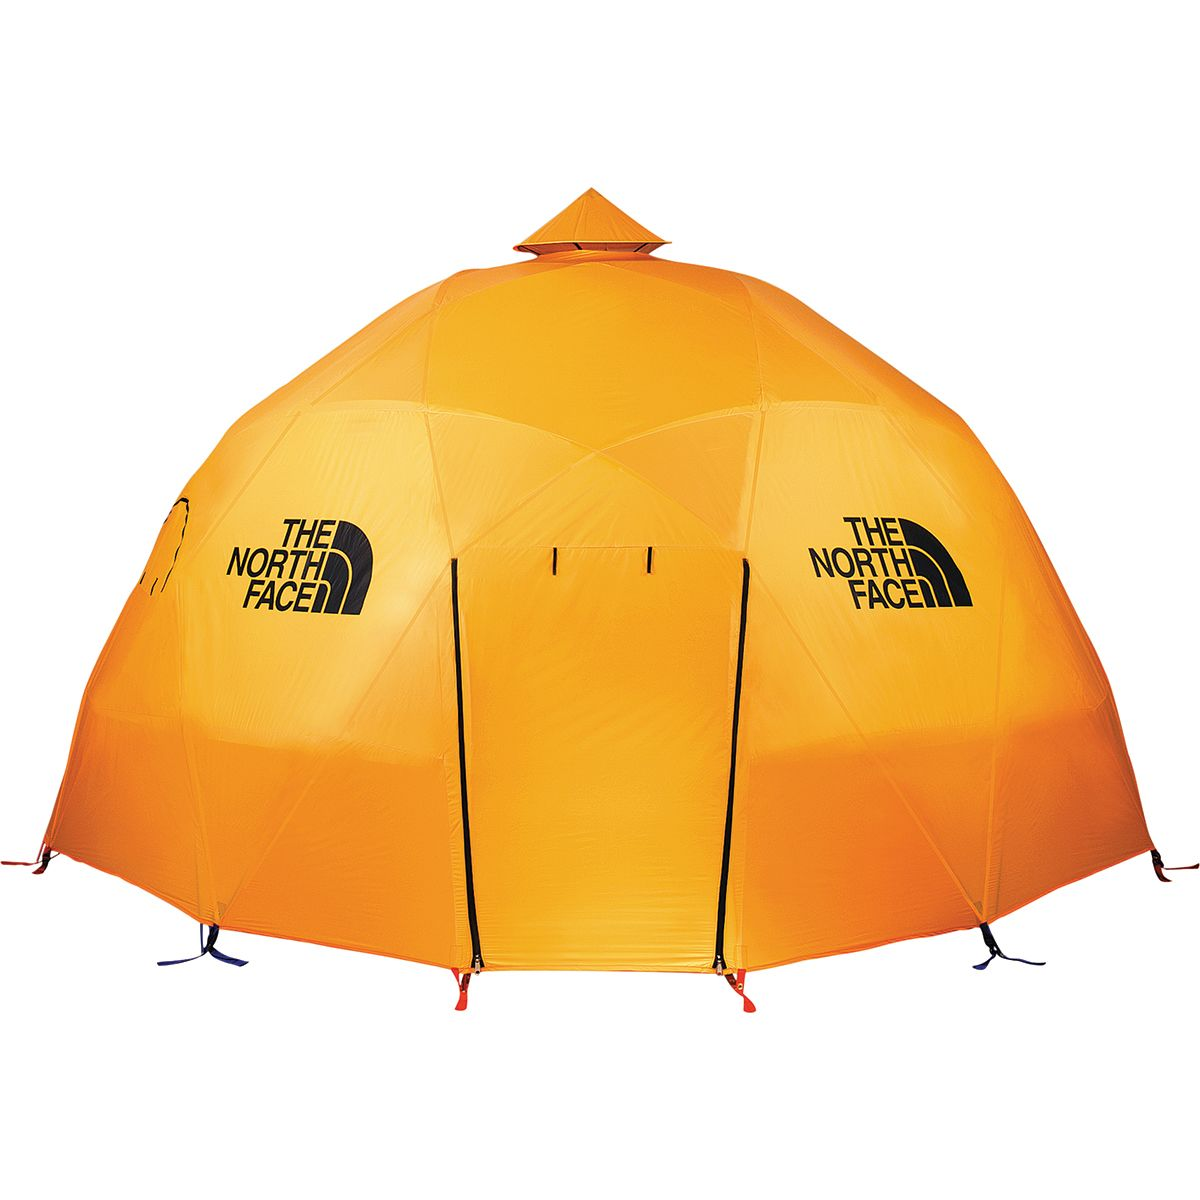 The North Face 2-Meter Dome